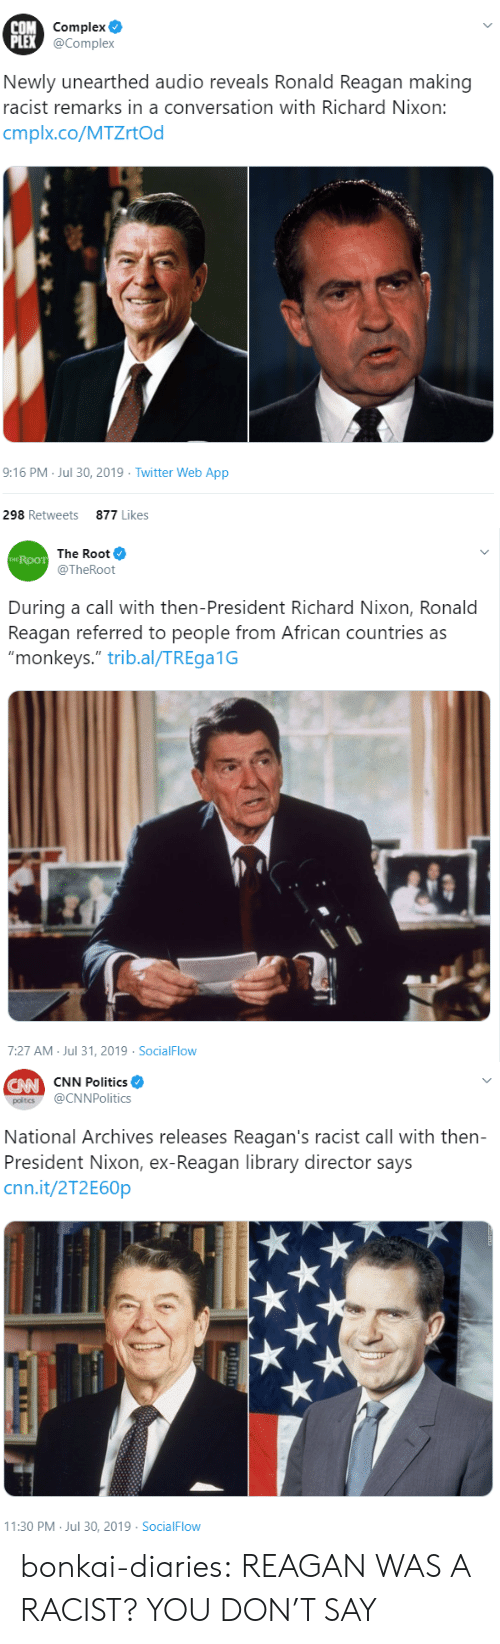 """Plex: COM Complex  PLEX @Complex  Newly unearthed audio reveals Ronald Reagan making  racist remarks in a conversation with Richard Nixon:  cmplx.co/MTZrtOd  9:16 PM Jul 30, 2019 Twitter Web App  298 Retweets  877 Likes   The Root  THE ROOT  @TheRoot  During a call with then-President Richard Nixon, Ronald  Reagan referred to people from African countries as  """"monkeys."""" trib.al/TREga1G  7:27 AM Jul 31, 2019 SocialFlow   CW CNN Politics  @CNNPolitics  poltics  National Archives releases Reagan's racist call with then-  President Nixon, ex-Reagan library director says  cnn.it/2T2E60P  11:30 PM Jul 30, 2019 SocialFlow bonkai-diaries:  REAGAN WAS A RACIST? YOU DON'T SAY"""